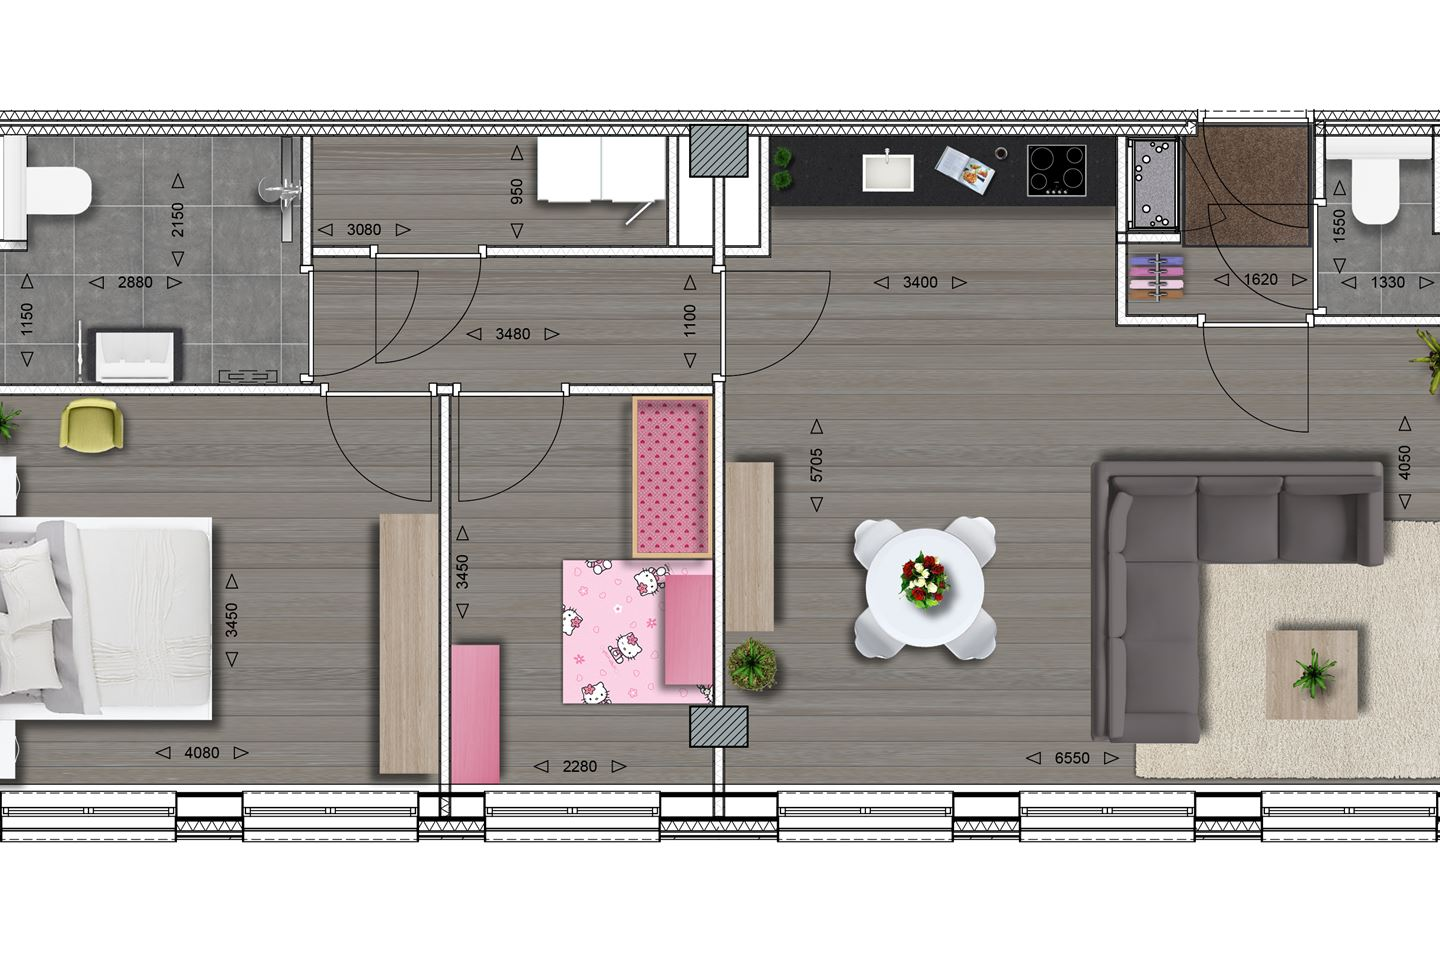 View photo 4 of Appartement (Bouwnr. 12)